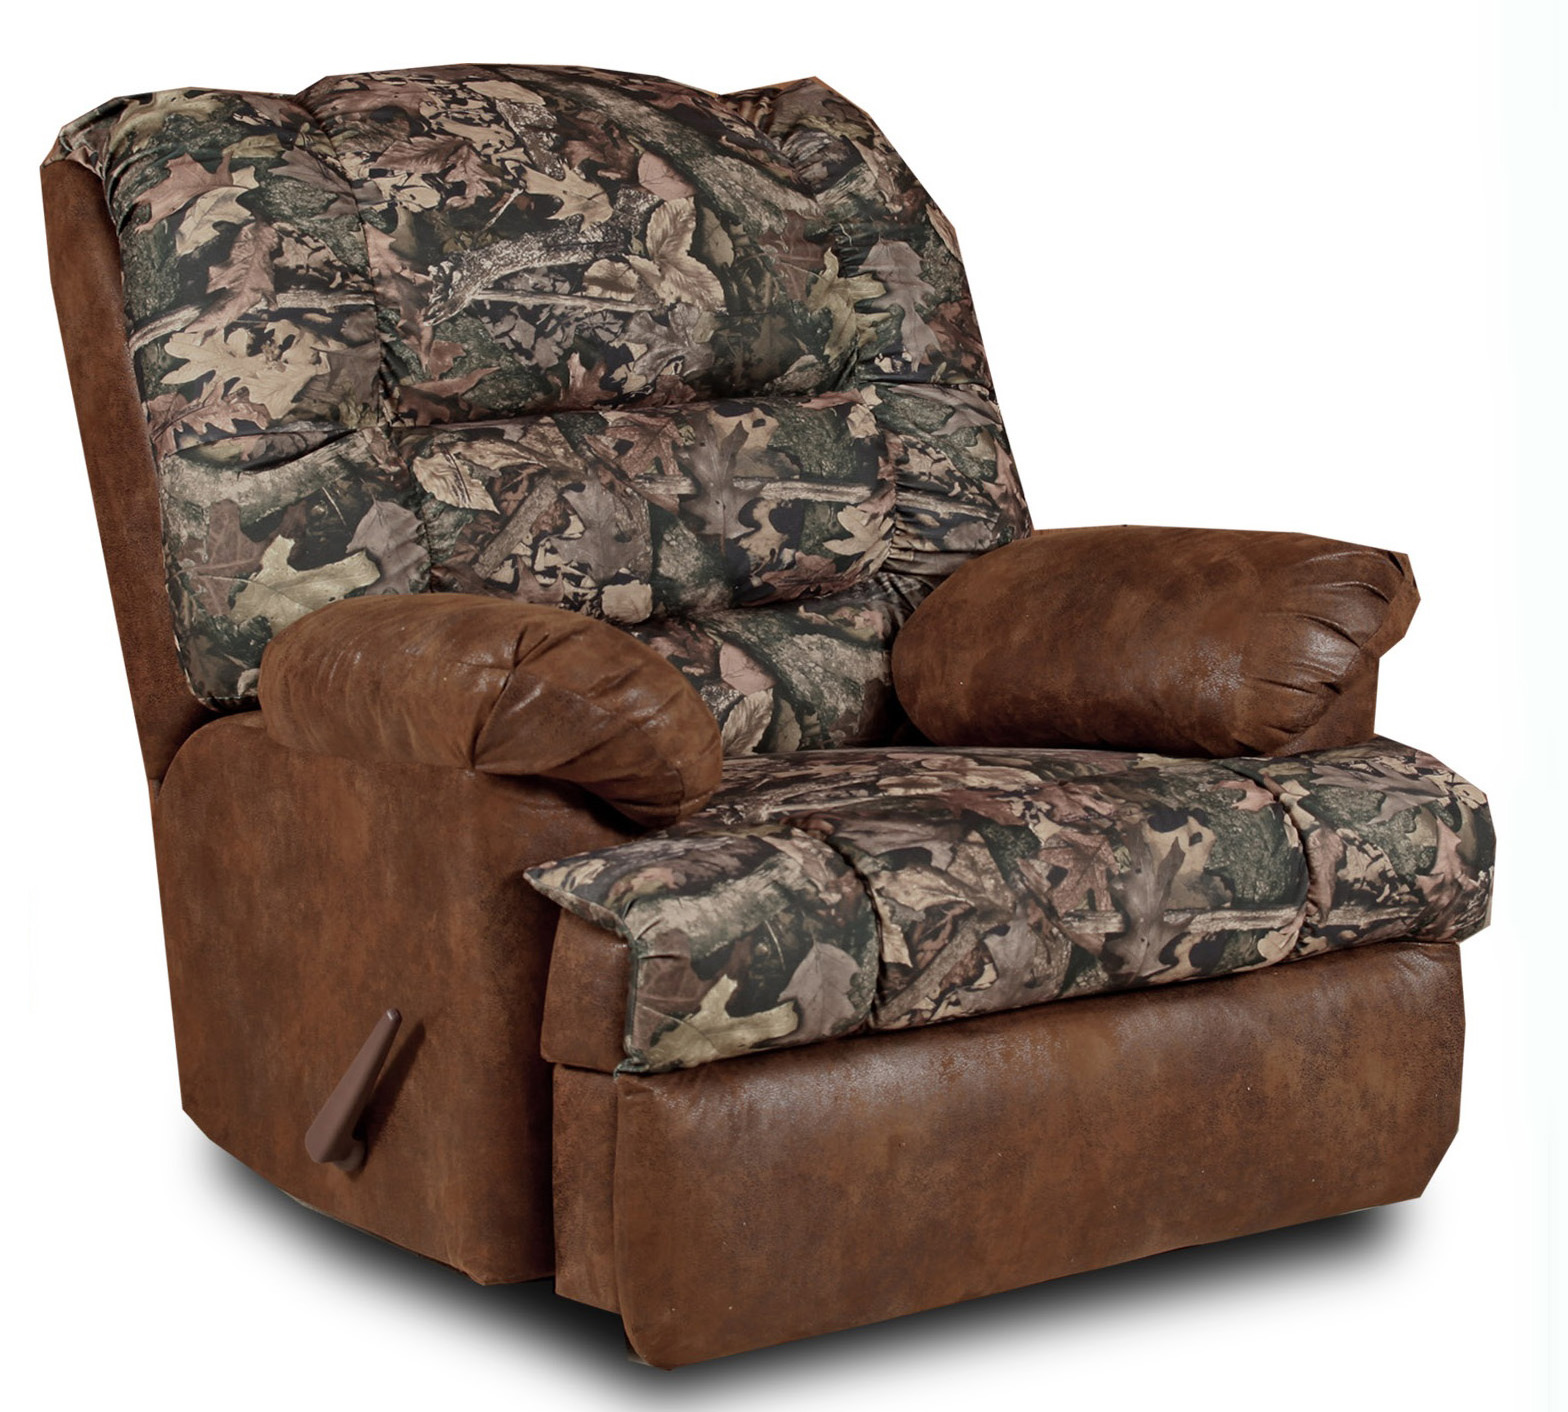 Big Mans Large Camo Recliner - Camo and Tobacco Fabric ...